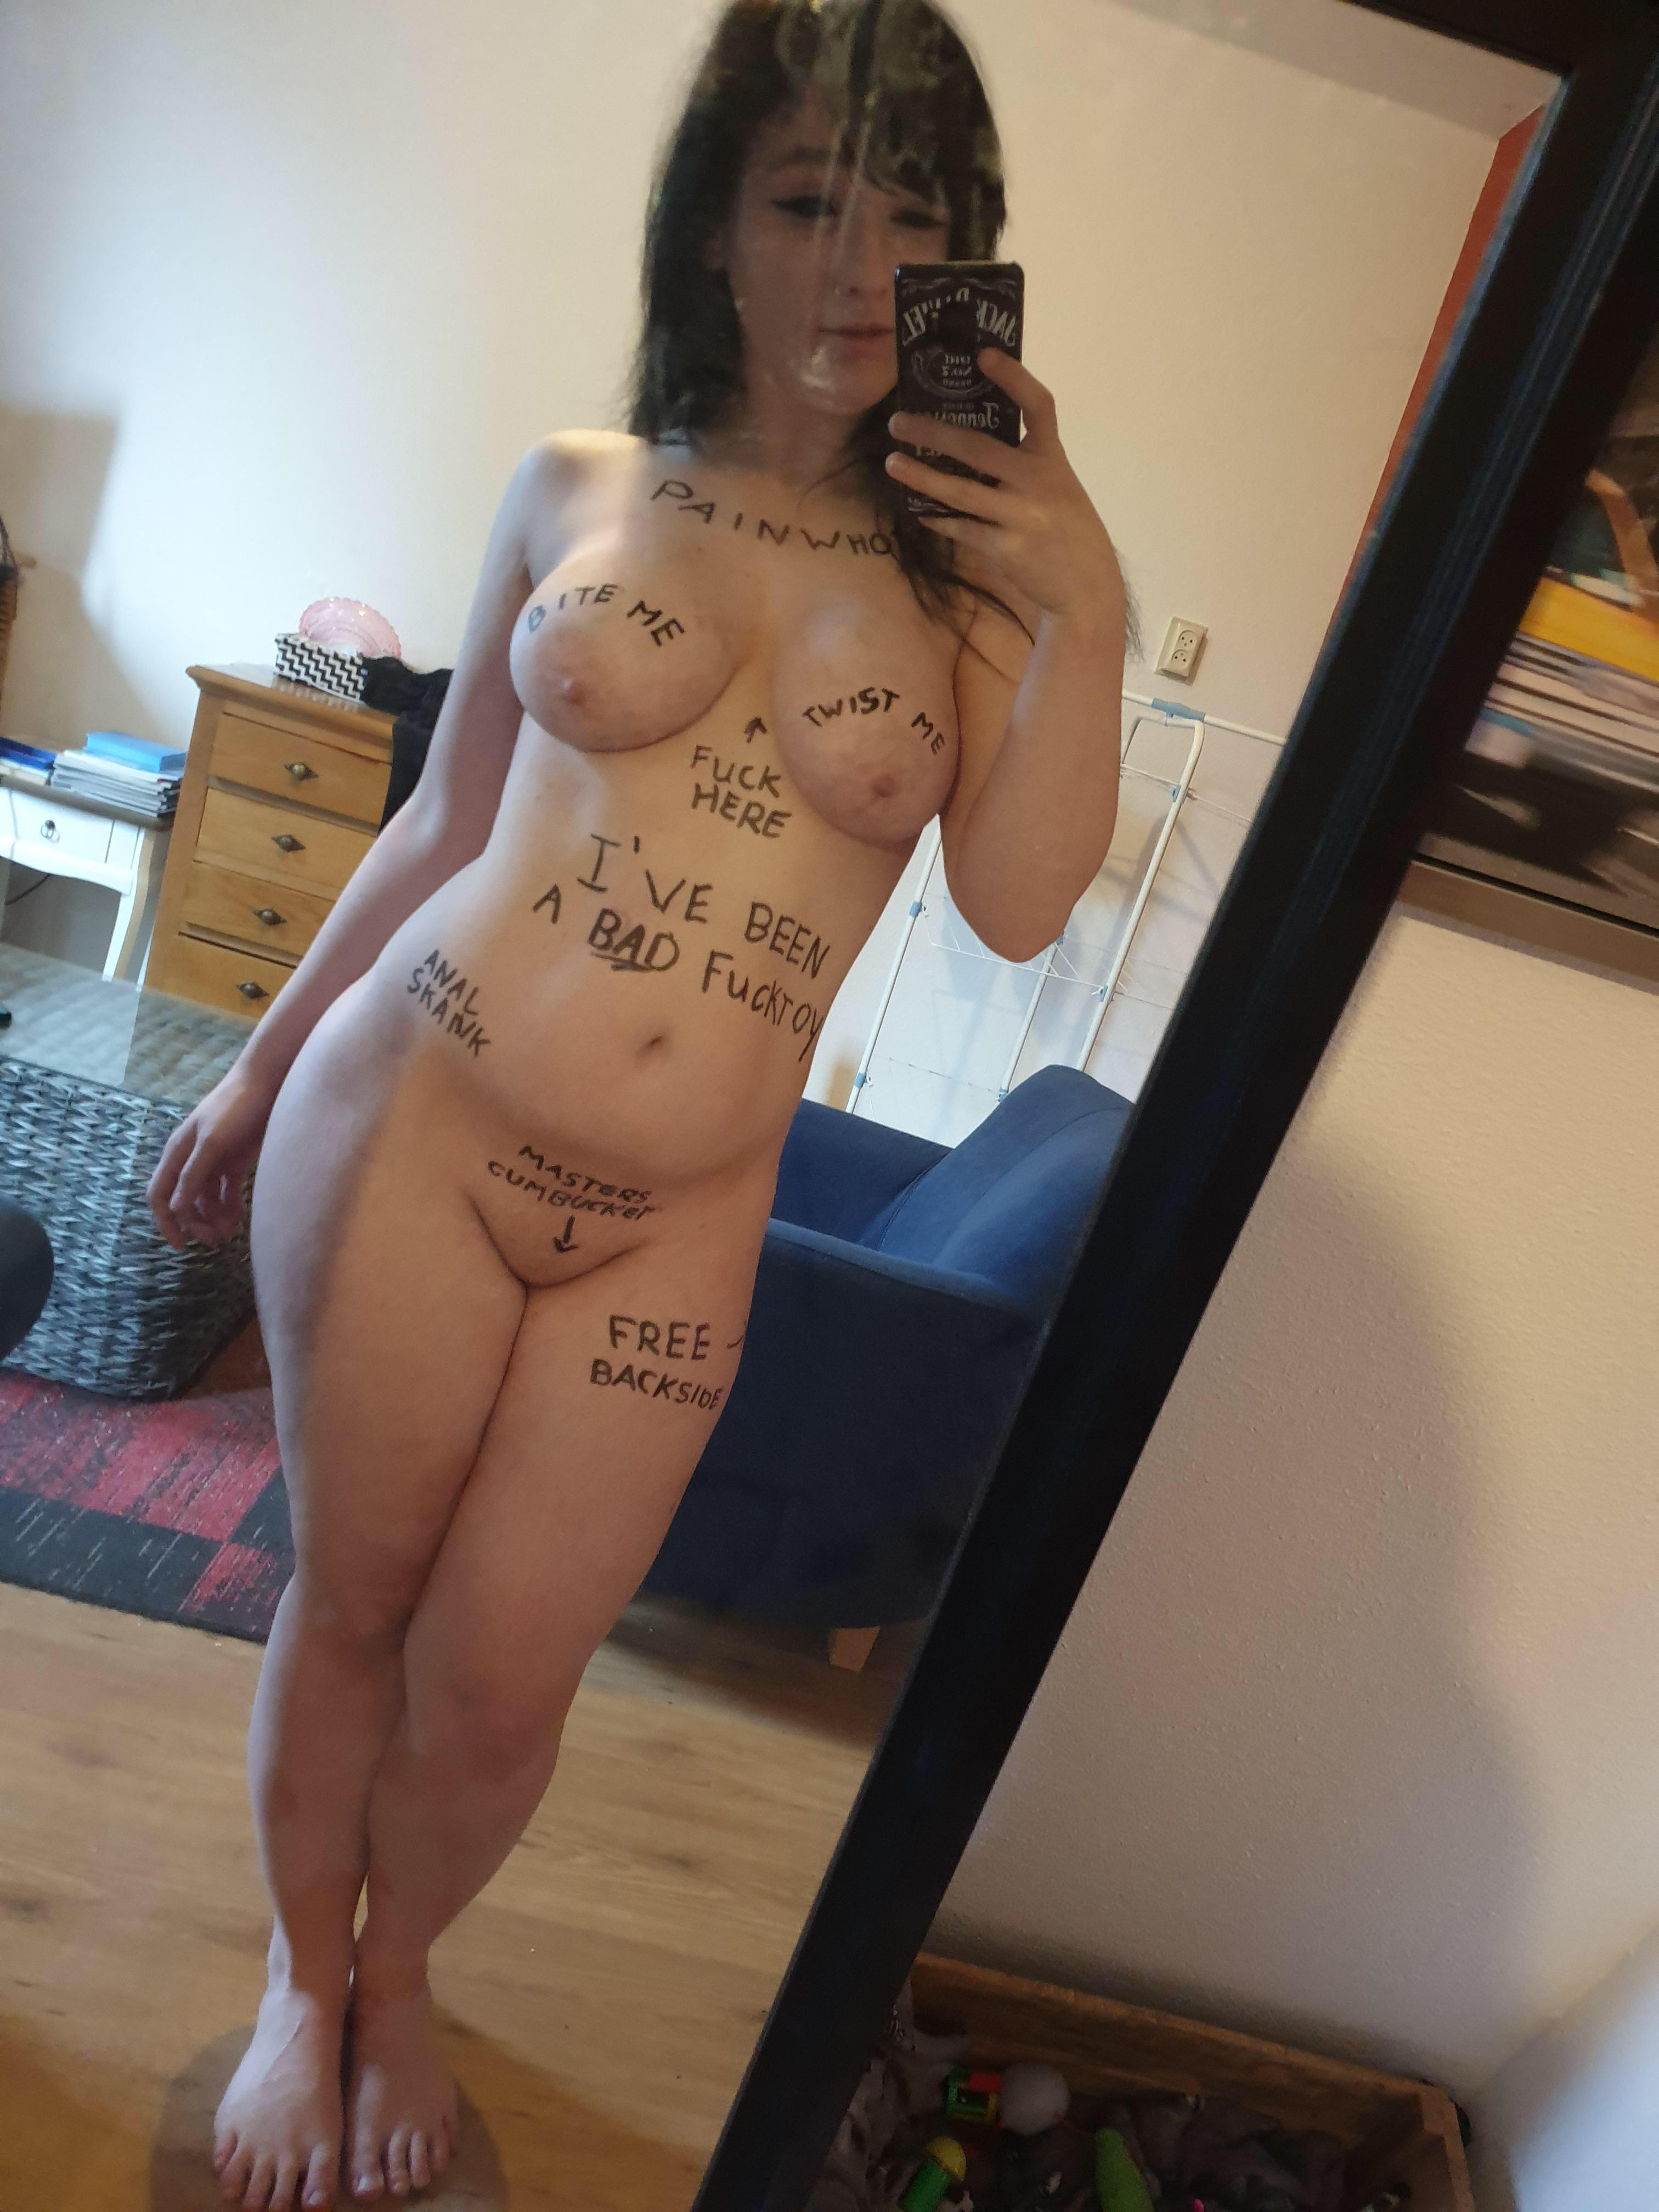 old chuby belly amateur woman dancer whore has a silly smile tmb